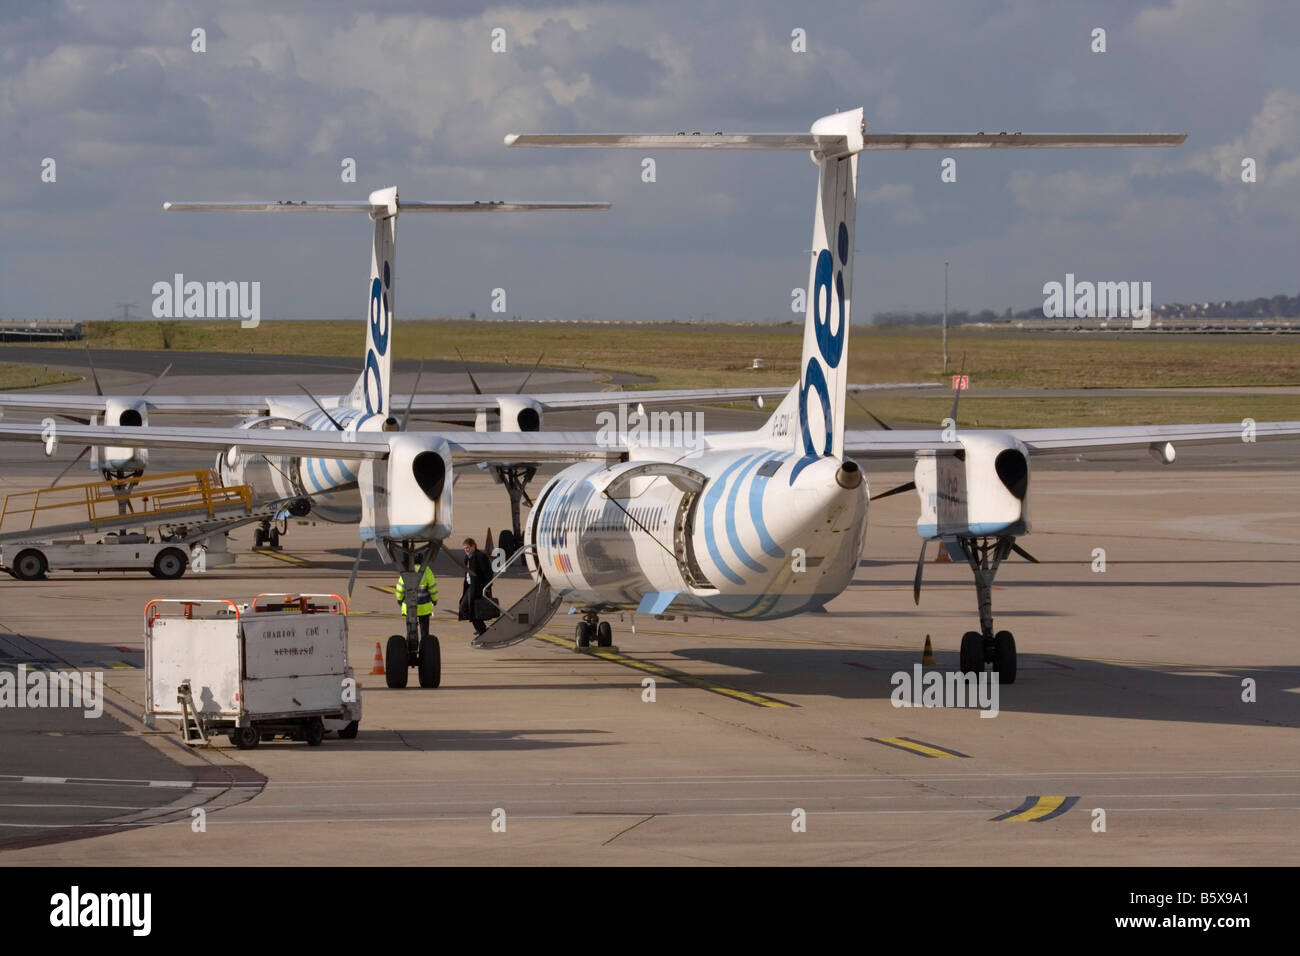 Short-haul air travel. Flybe Bombardier Dash 8-Q400 regional airliners on the ramp at Paris Charles de Gaulle airport. - Stock Image